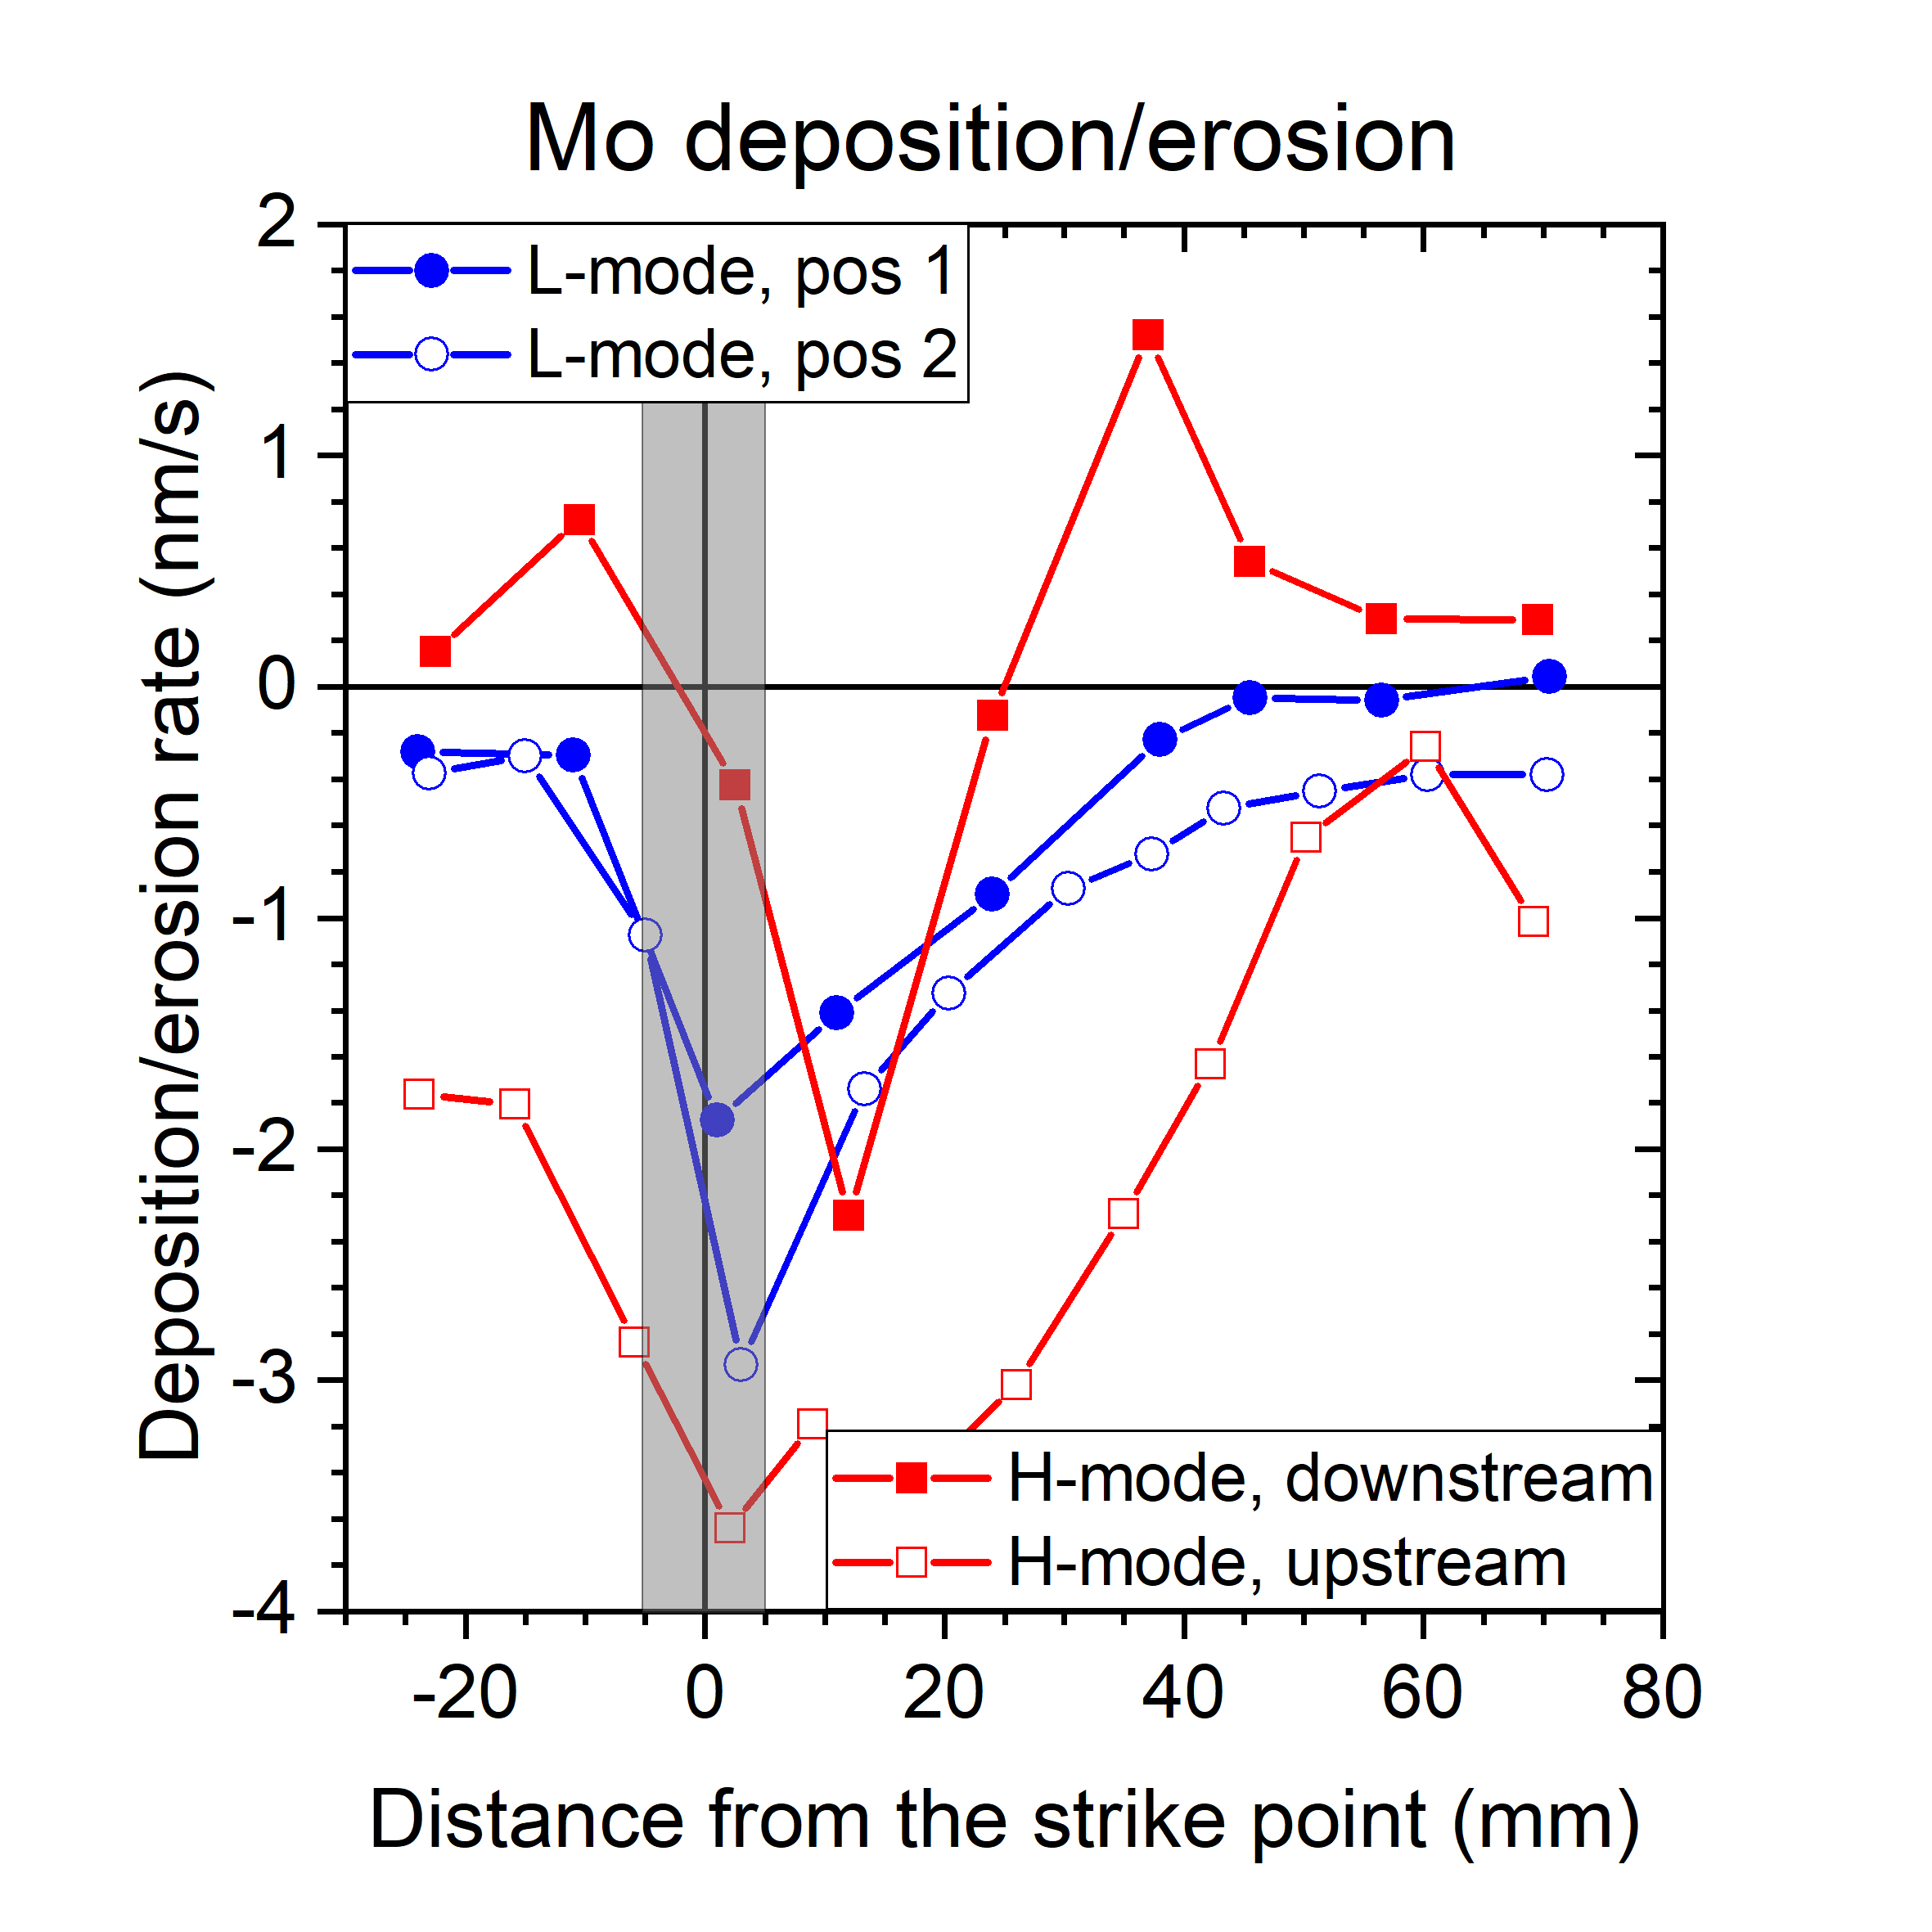 Net erosion/deposition profiles of the Mo markers during L- and H-mode discharges on AUG.